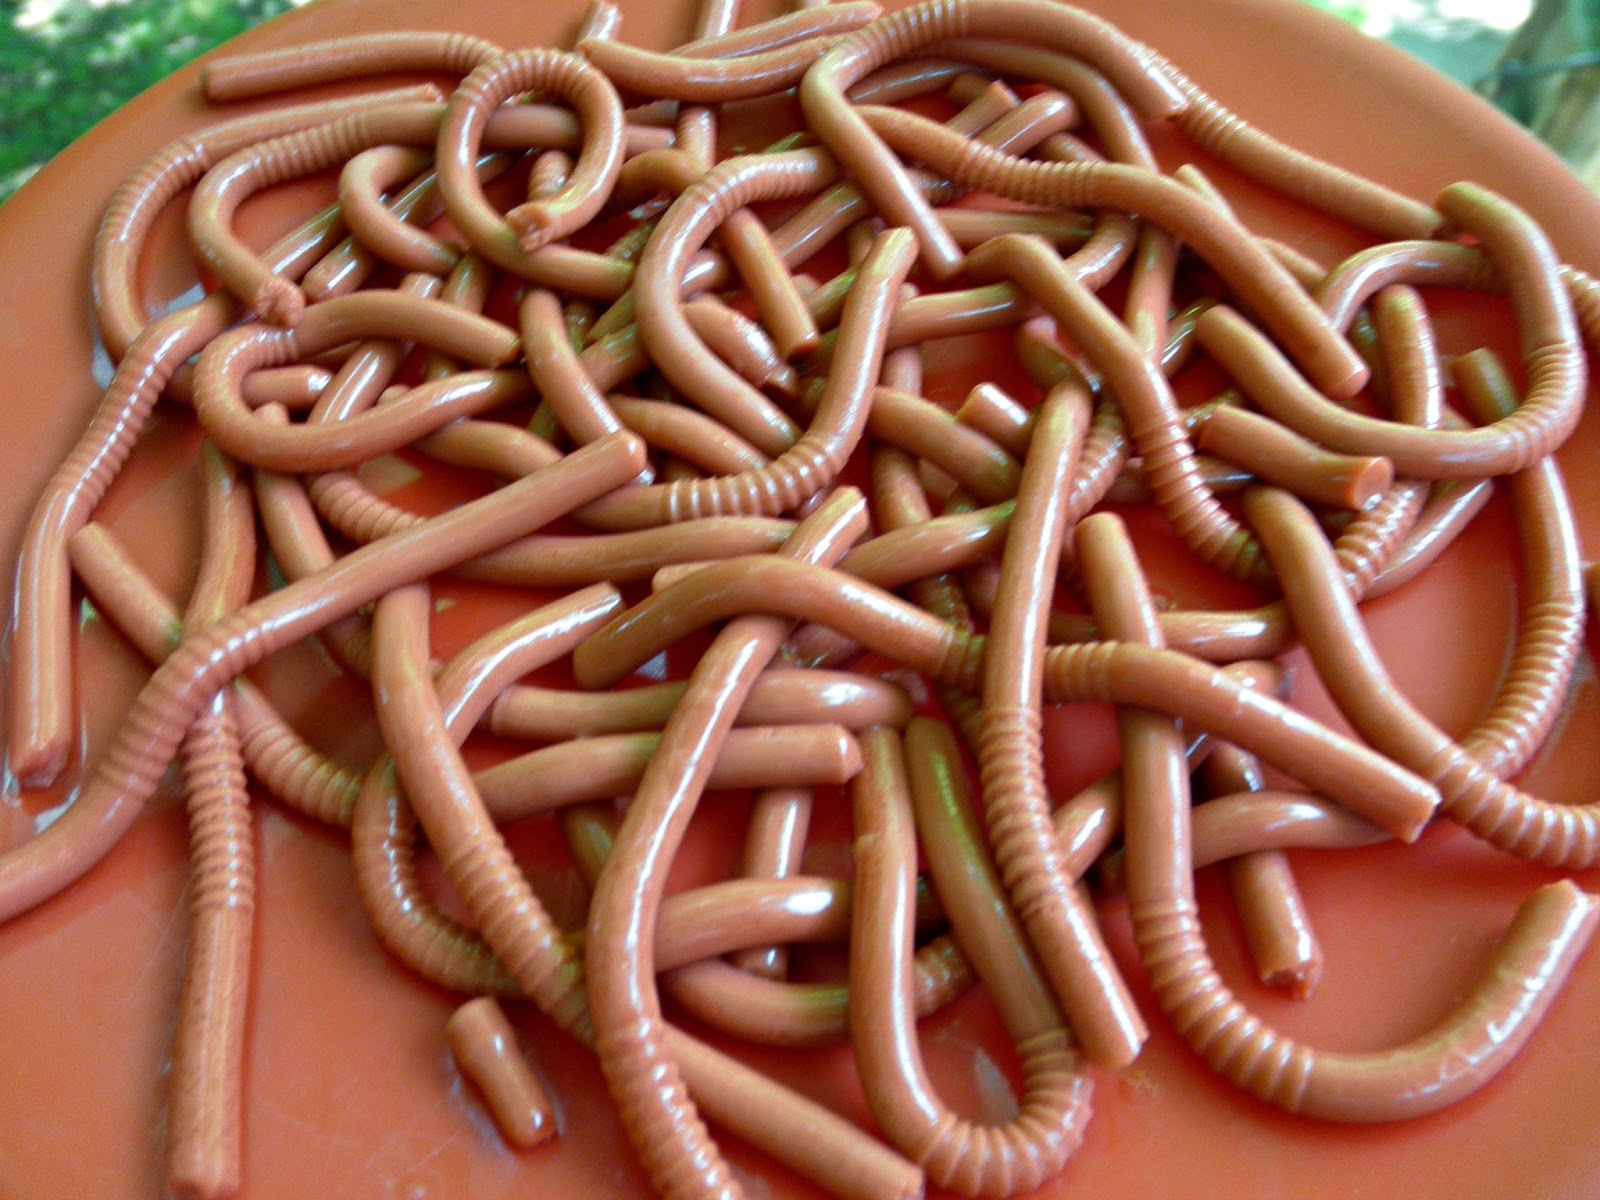 http://anestintherocks.blogspot.com/2014/05/gratituesday-lets-eat-worms-or-not.html